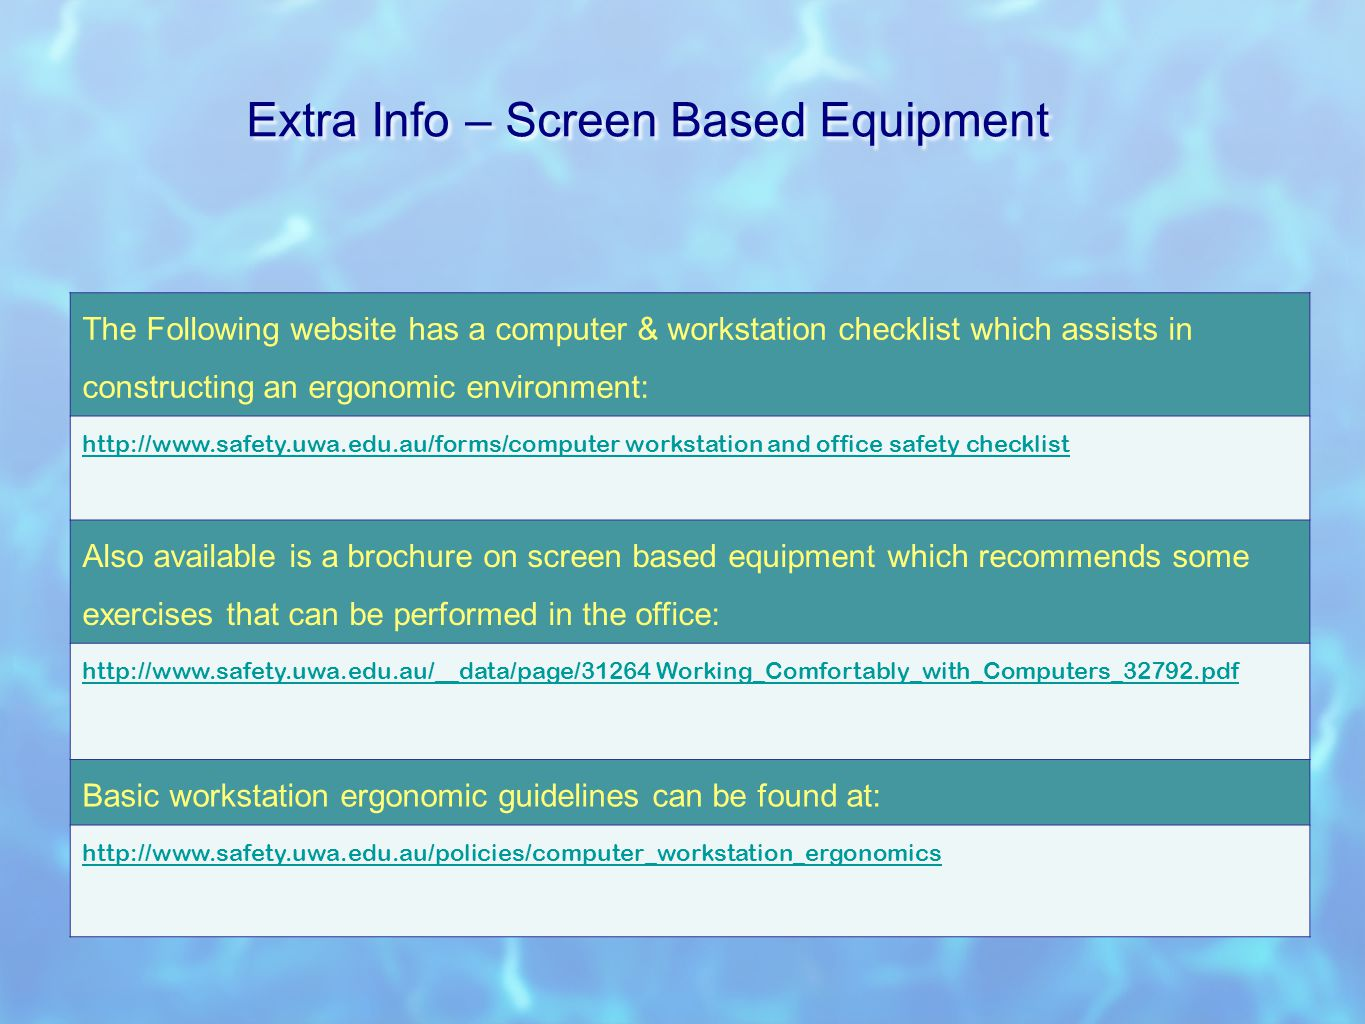 Extra Info – Screen Based Equipment The Following website has a computer & workstation checklist which assists in constructing an ergonomic environment: http://www.safety.uwa.edu.au/forms/computer workstation and office safetyhttp://www.safety.uwa.edu.au/forms/computer workstation and office safety checklist Also available is a brochure on screen based equipment which recommends some exercises that can be performed in the office: http://www.safety.uwa.edu.au/__data/page/31264http://www.safety.uwa.edu.au/__data/page/31264 Working_Comfortably_with_Computers_32792.pdf Basic workstation ergonomic guidelines can be found at: http://www.safety.uwa.edu.au/policies/computer_workstation_ergonomics